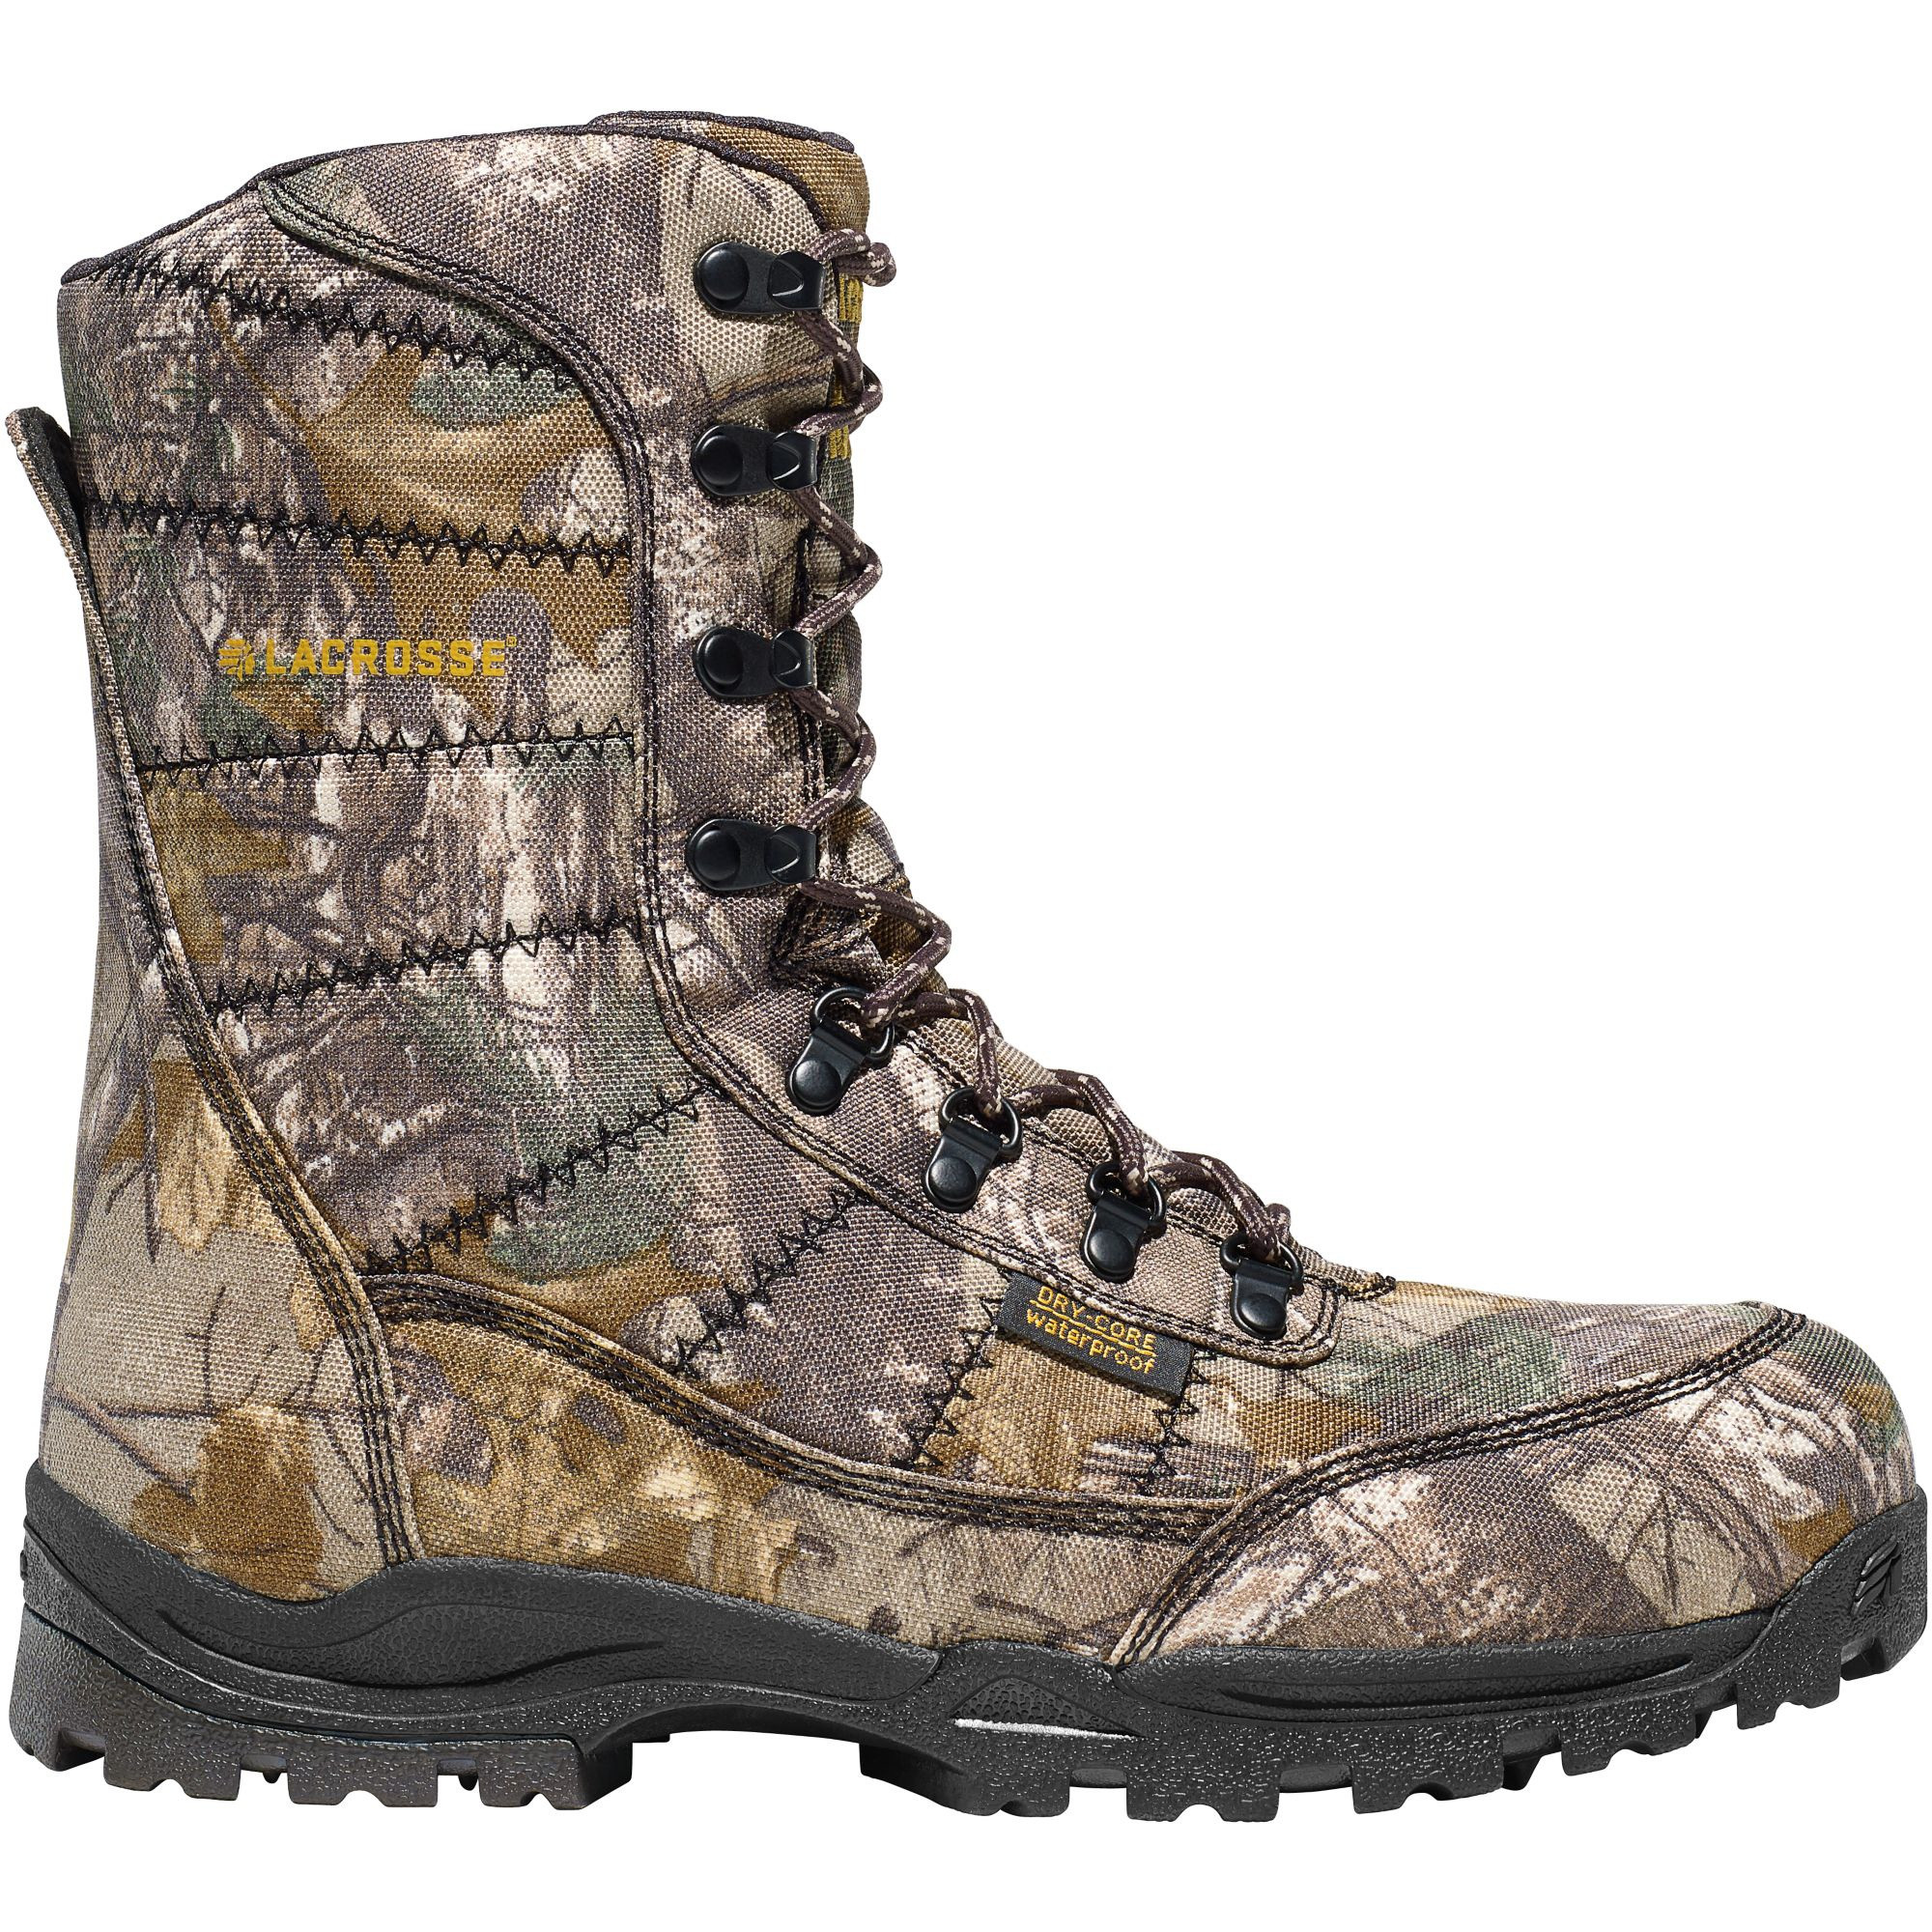 Lacrosse Silencer 8 Quot Hunting Boots Realtree Xtra 1000g